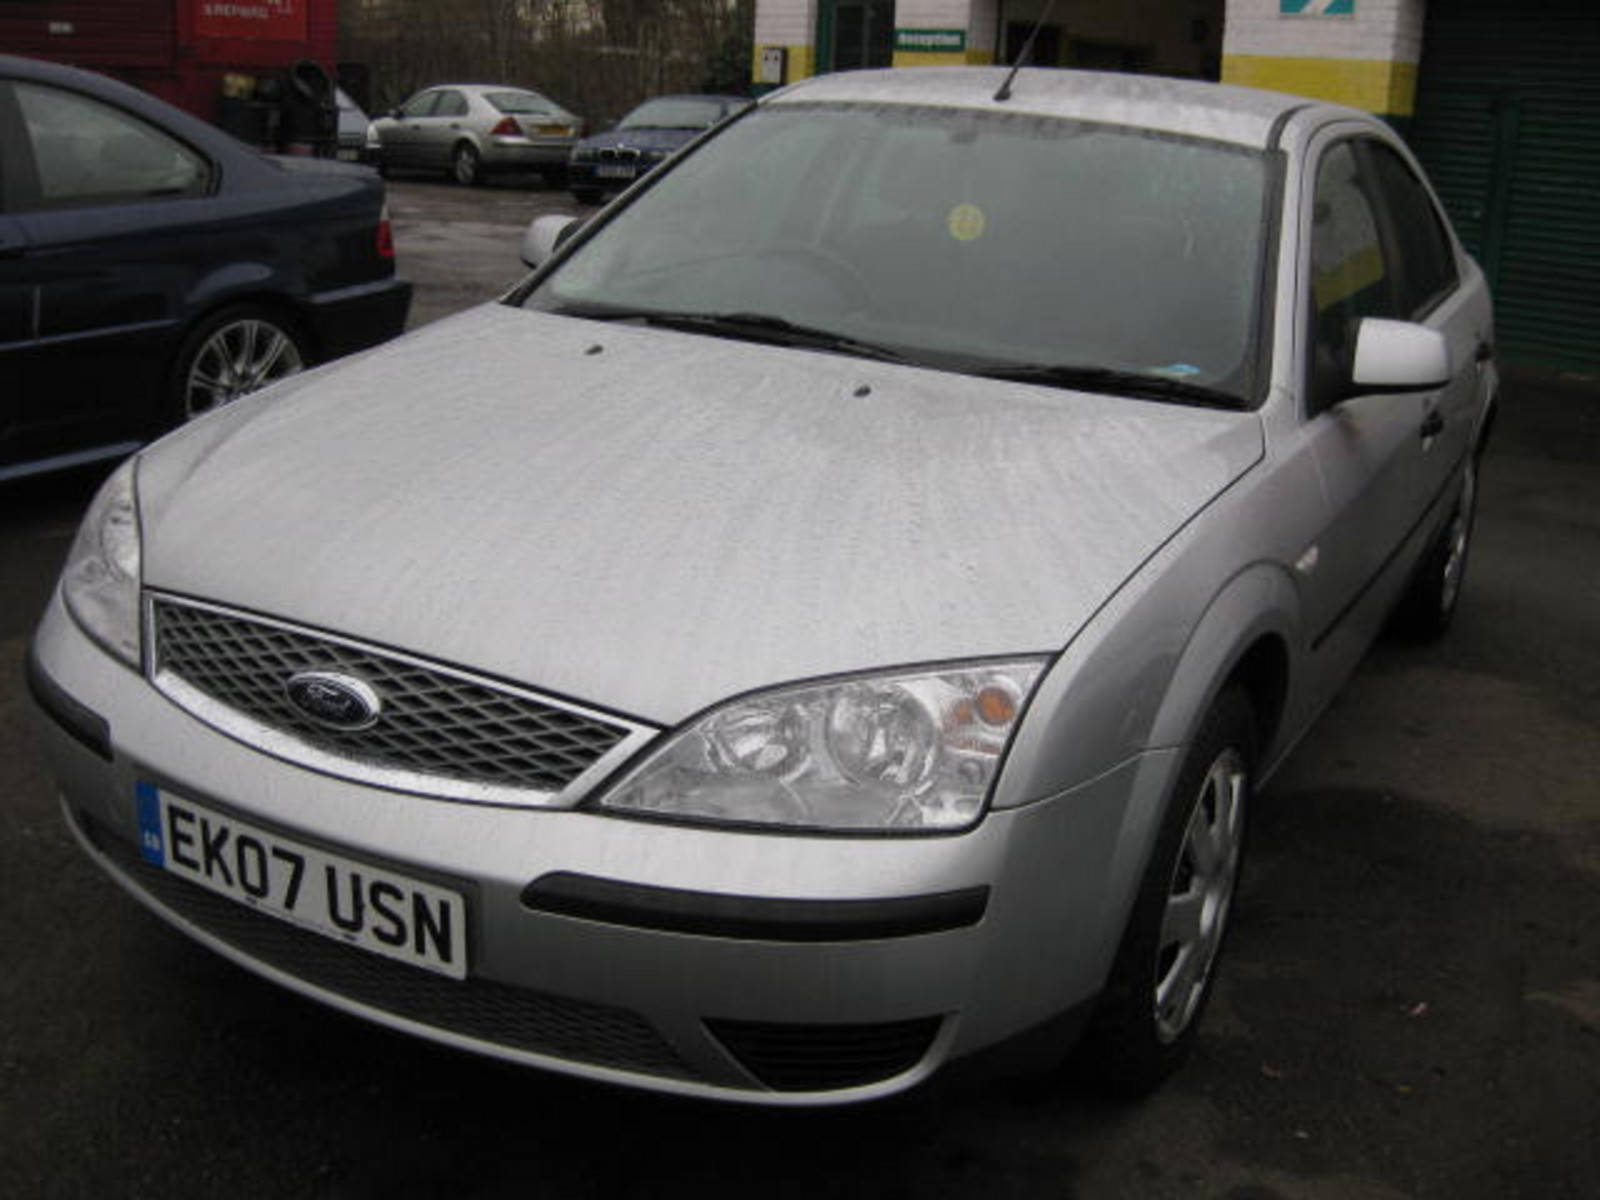 Ford Mondeo 1.8 LX Hatchback Petrol Silver at H &amp; D Motors Watford 